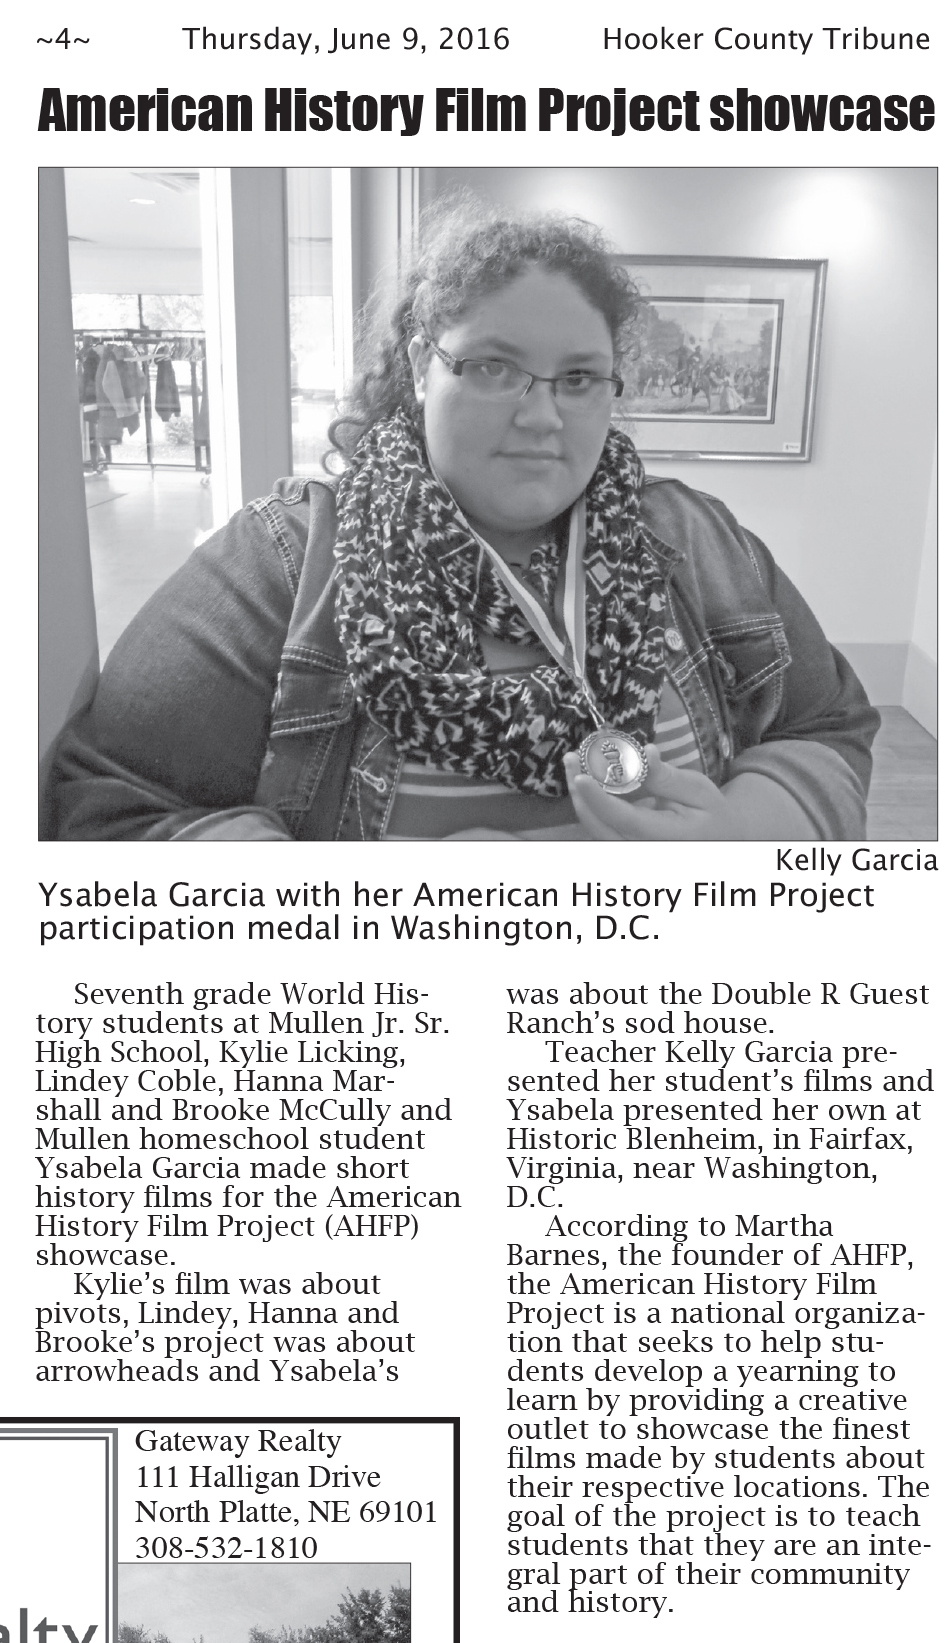 Ysabela Garcia and Her American History Film Project Participation Medal